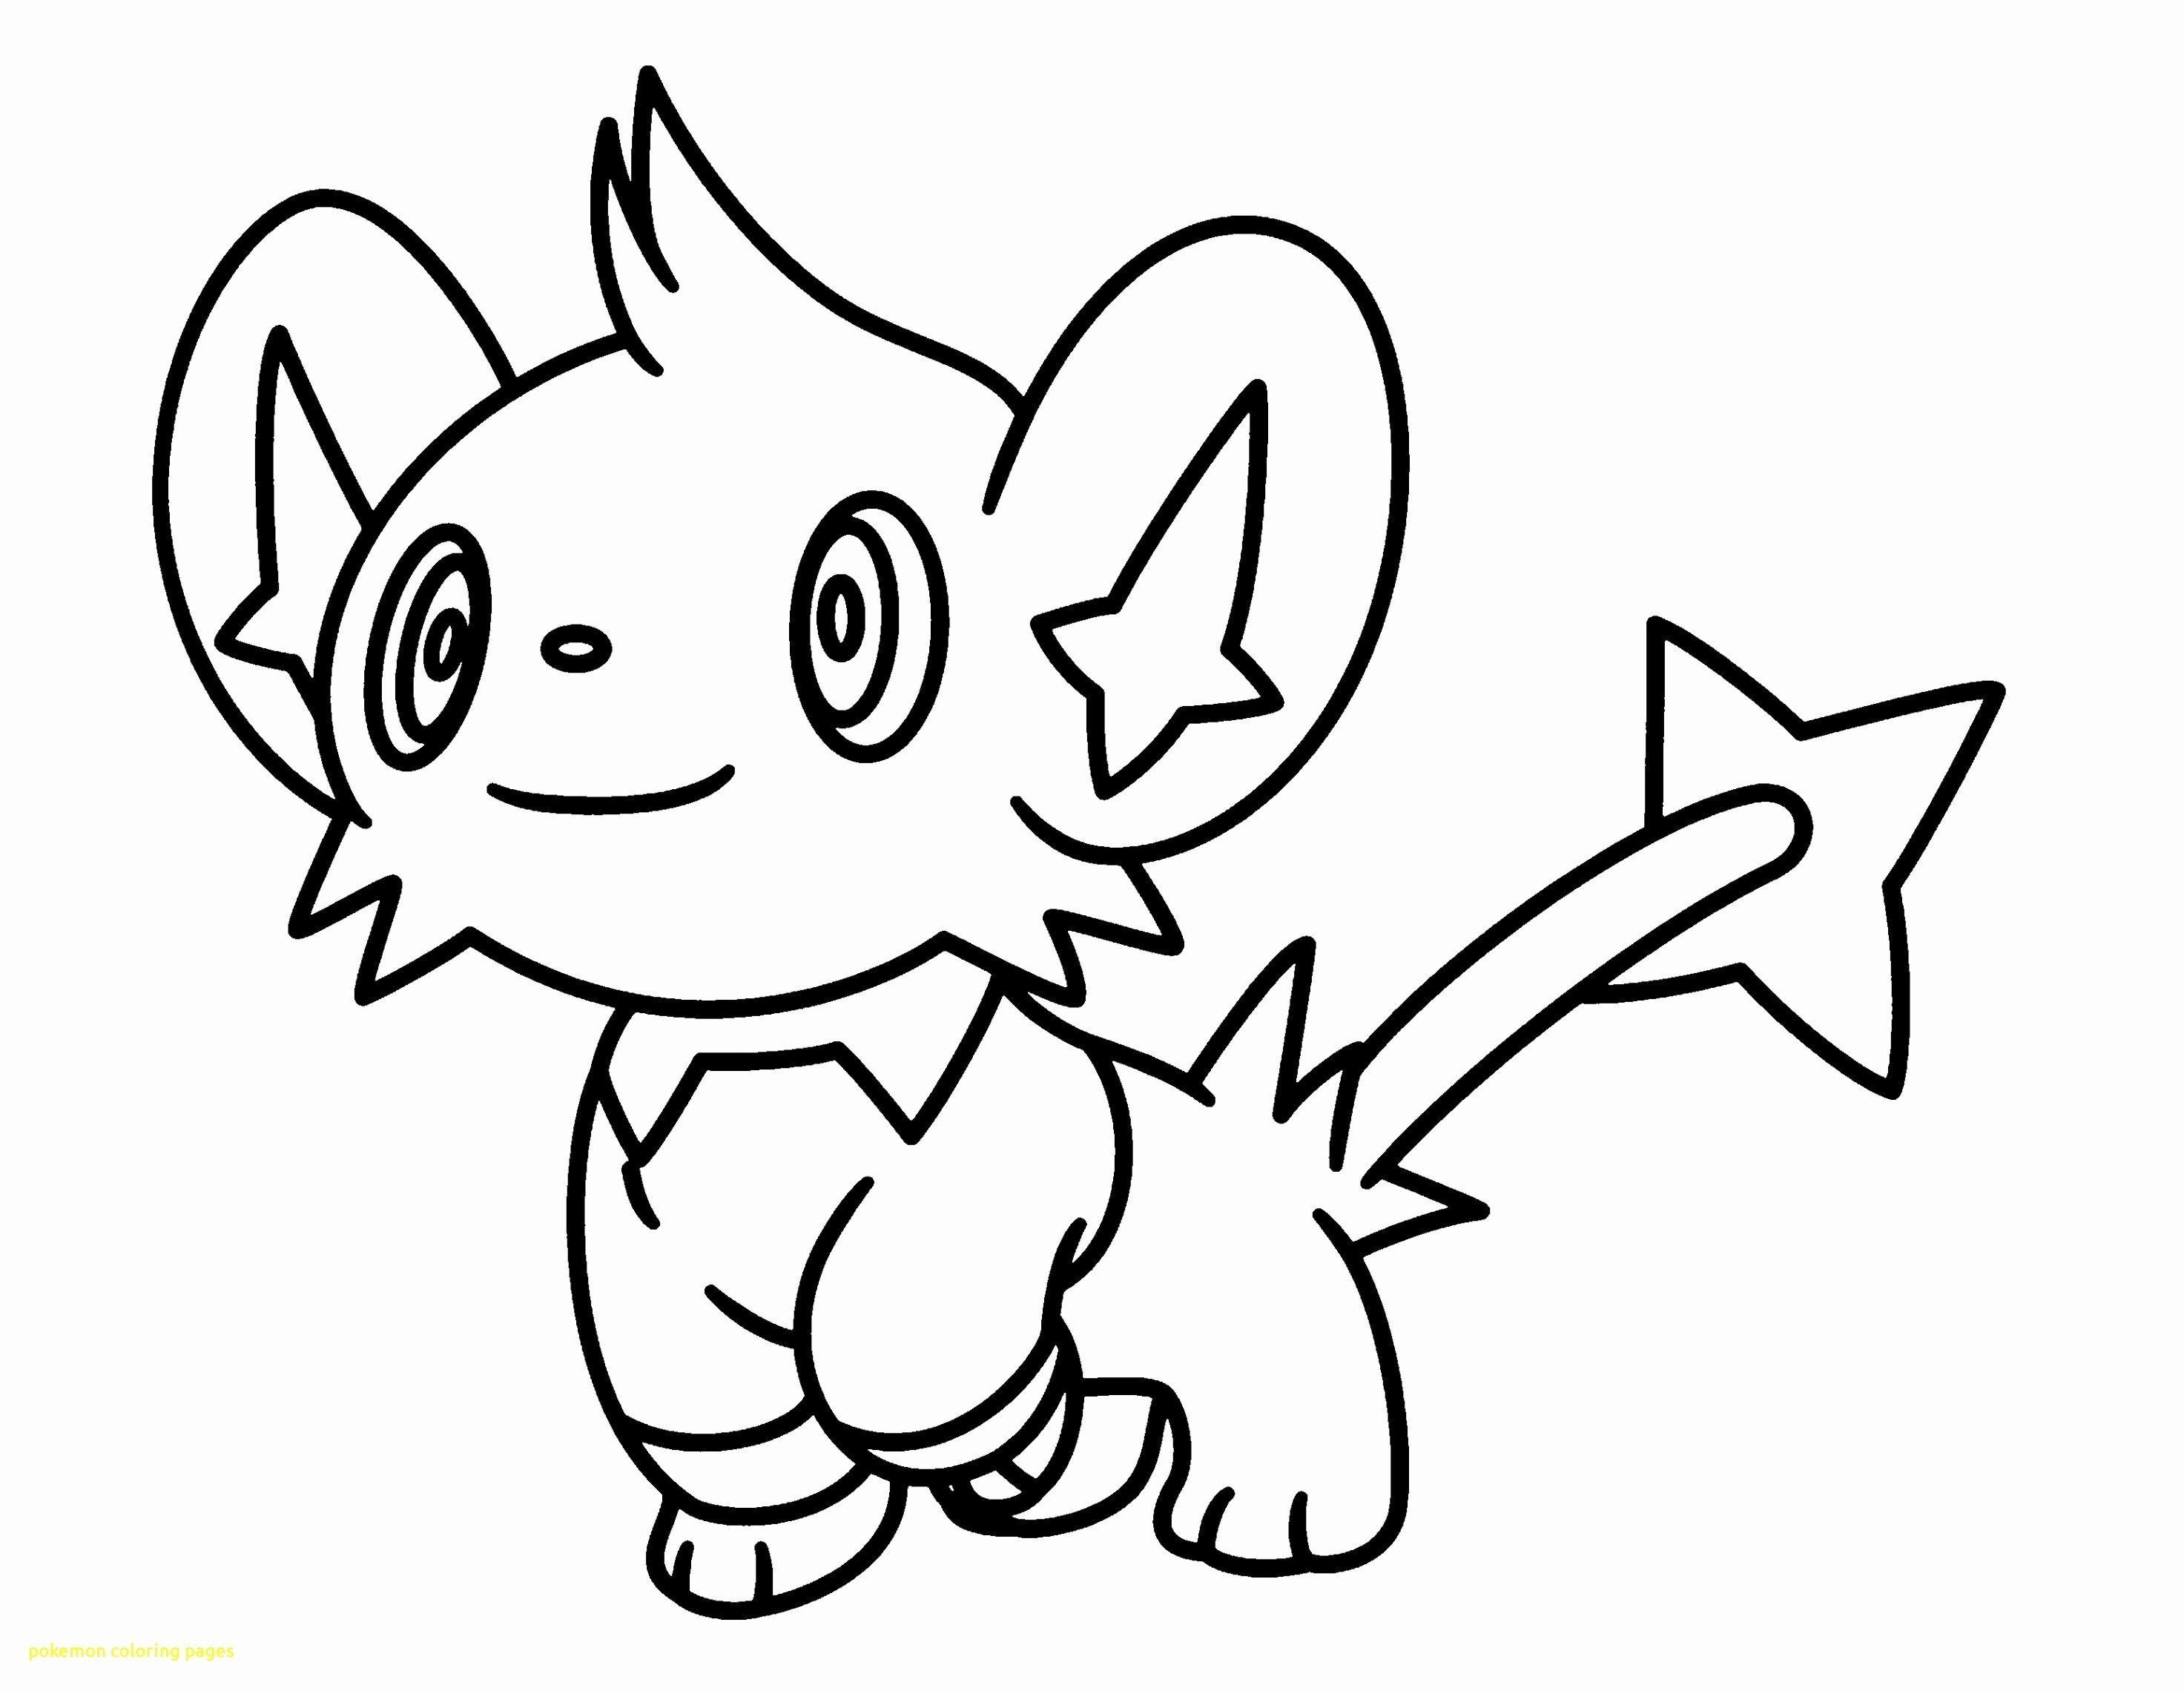 Pokemon Coloring Pages Printable Beautiful Of Pokemon Coloring Pages Printable Black And White Pokemon Coloring Pikachu Coloring Page Pokemon Coloring Sheets